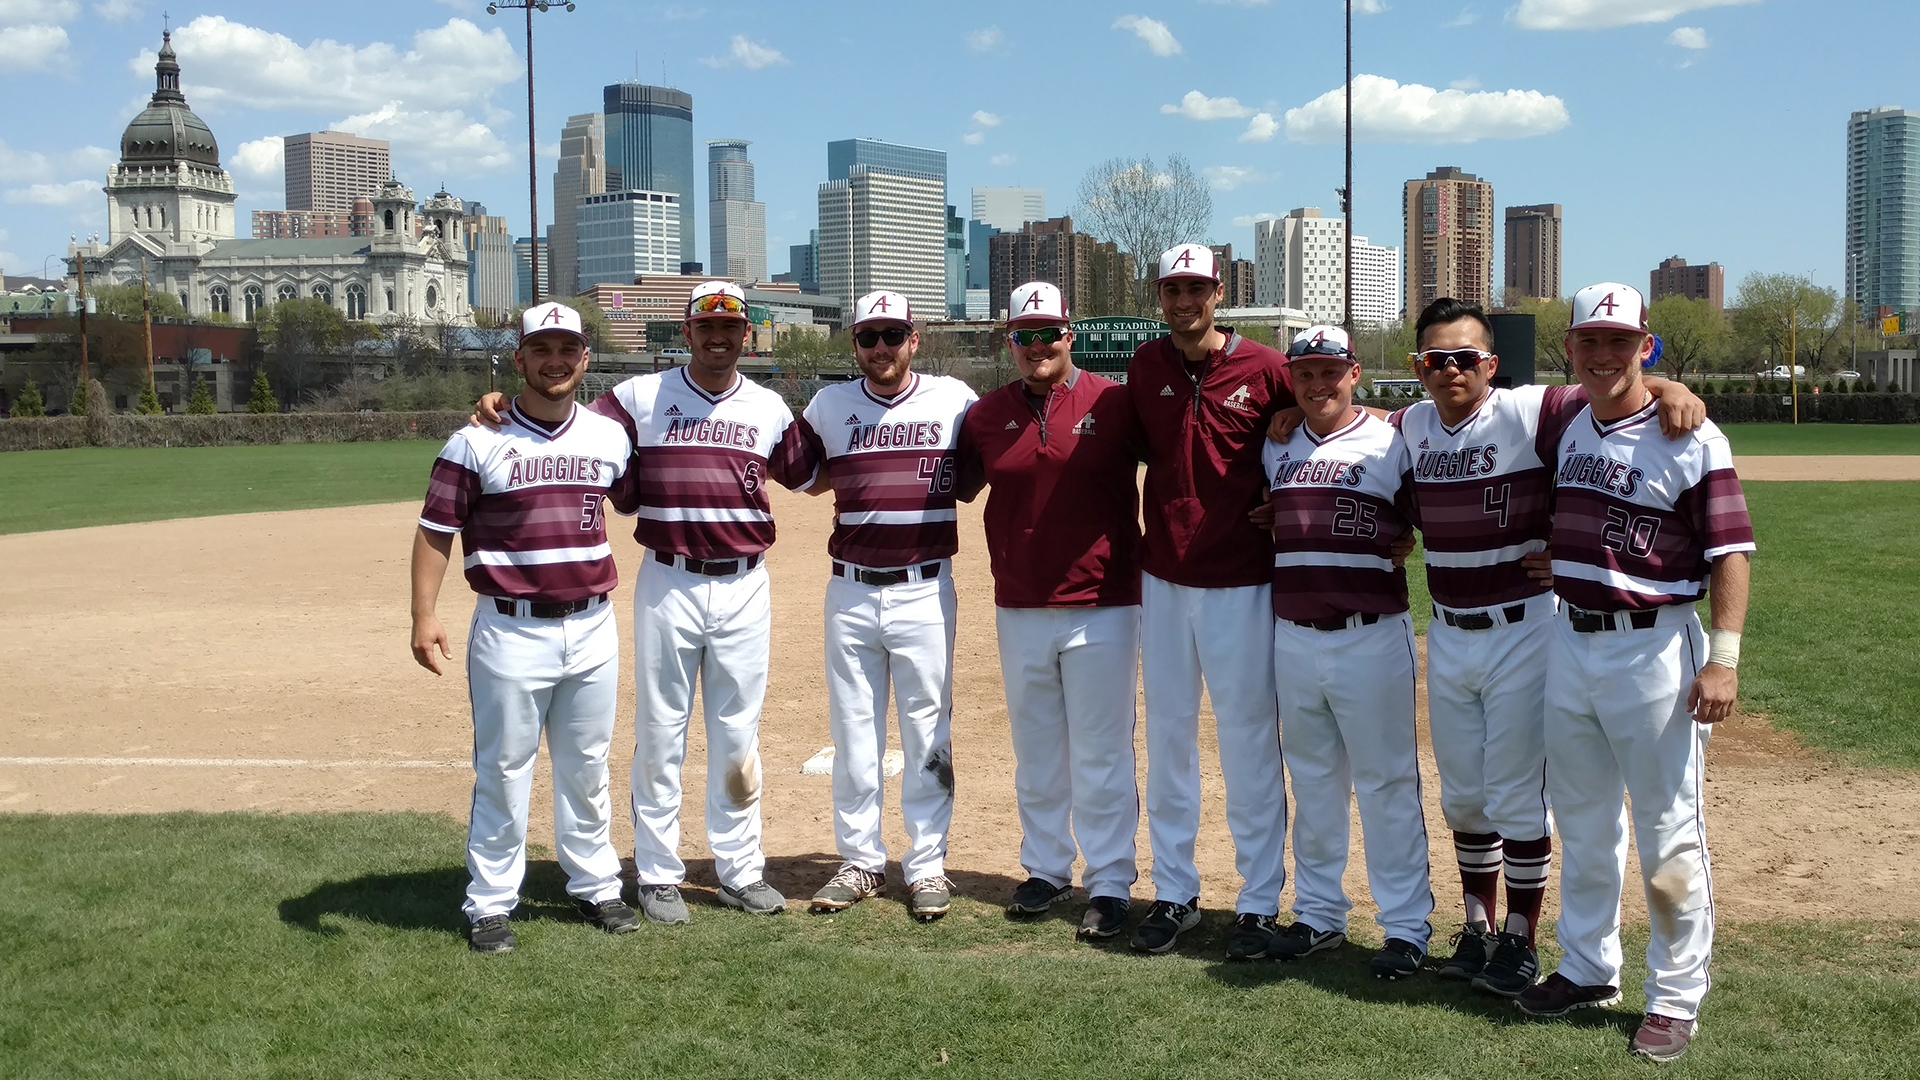 Bb Augsburg 11 run inning leads to augsburg win in season finale the official